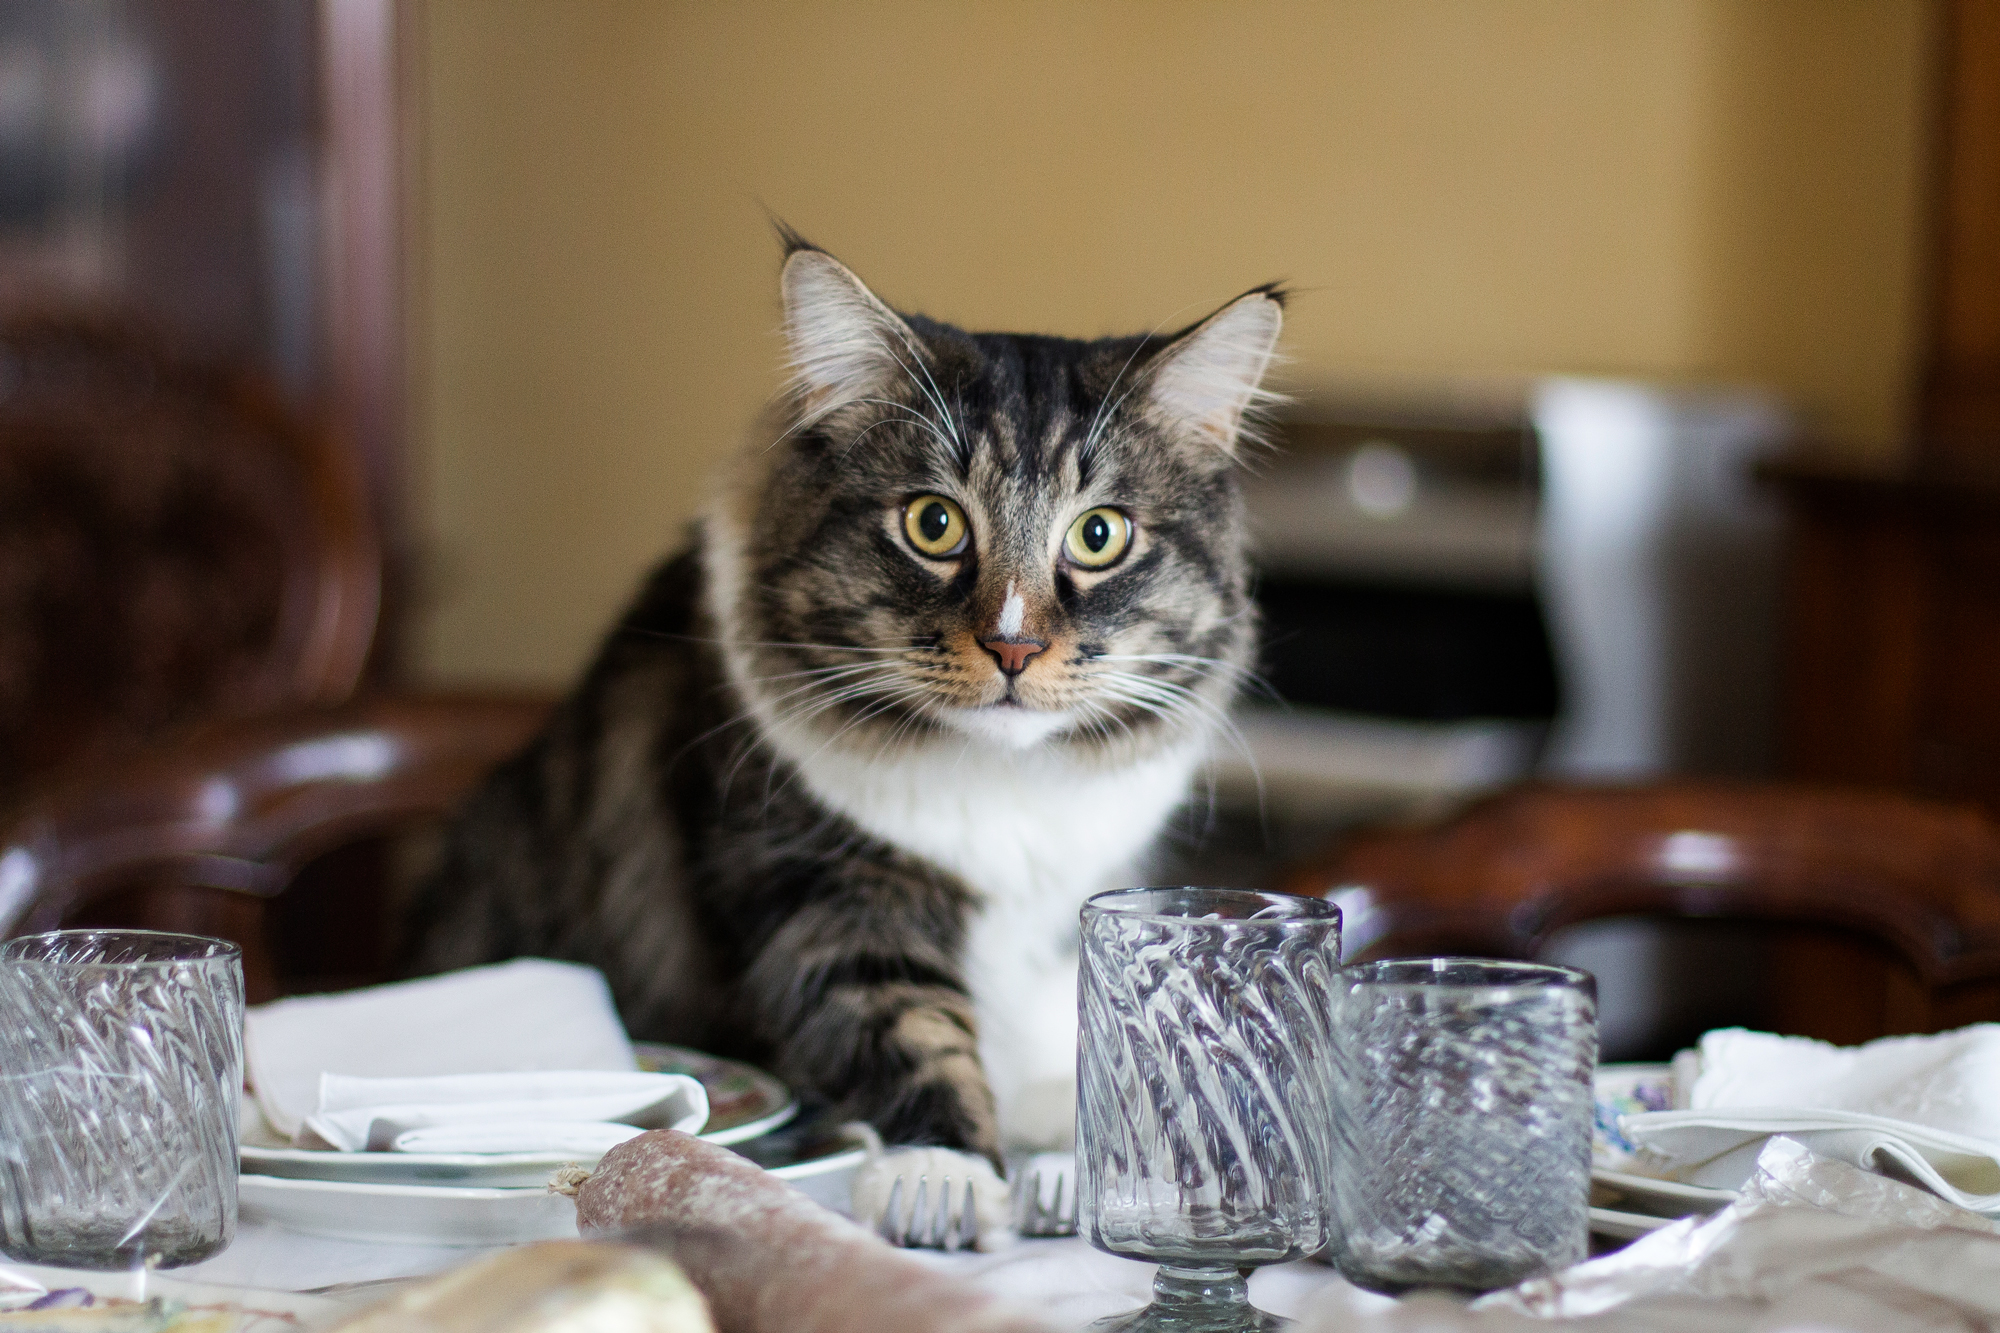 Cat on the dining table